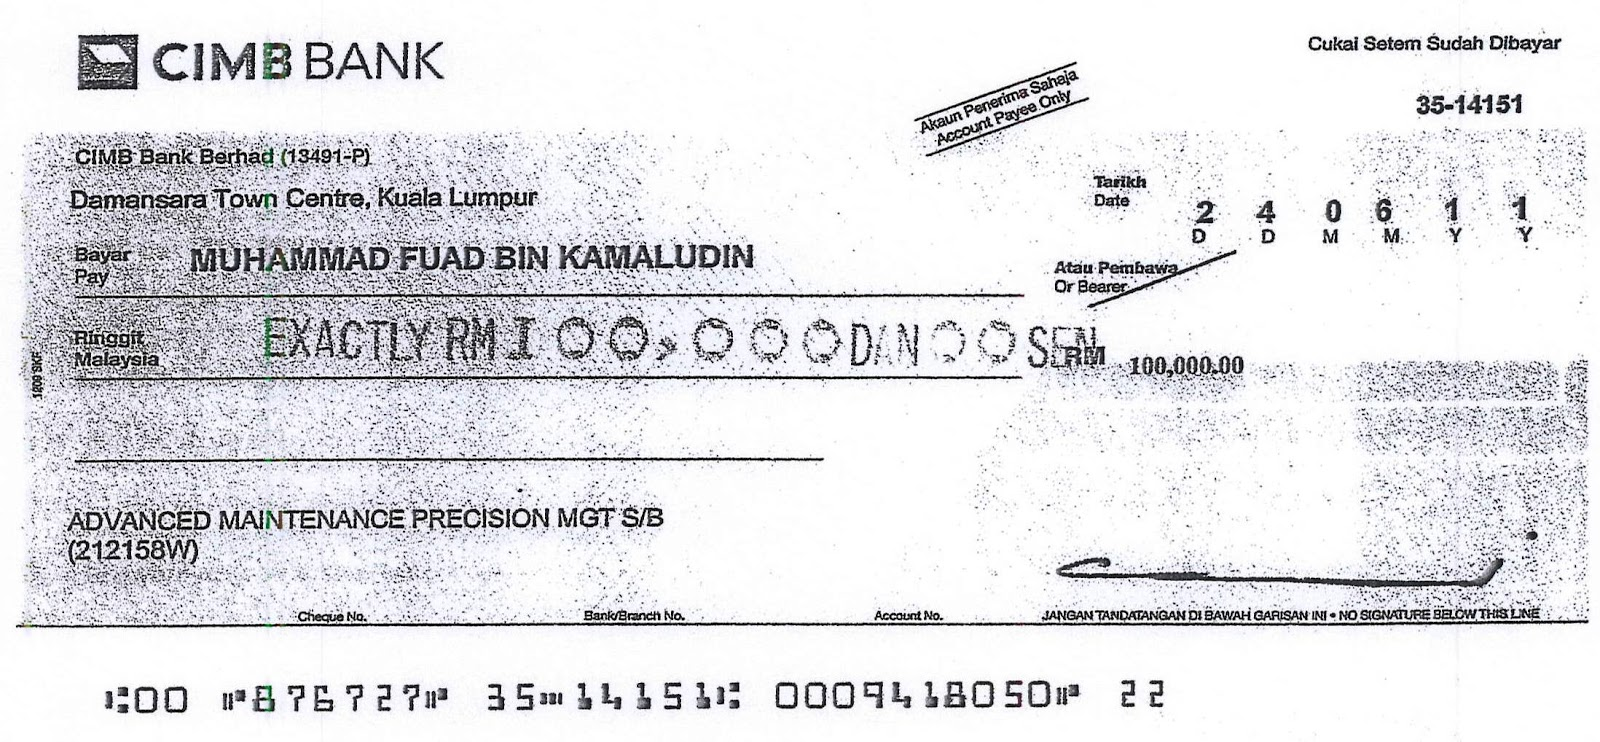 picture of cheque